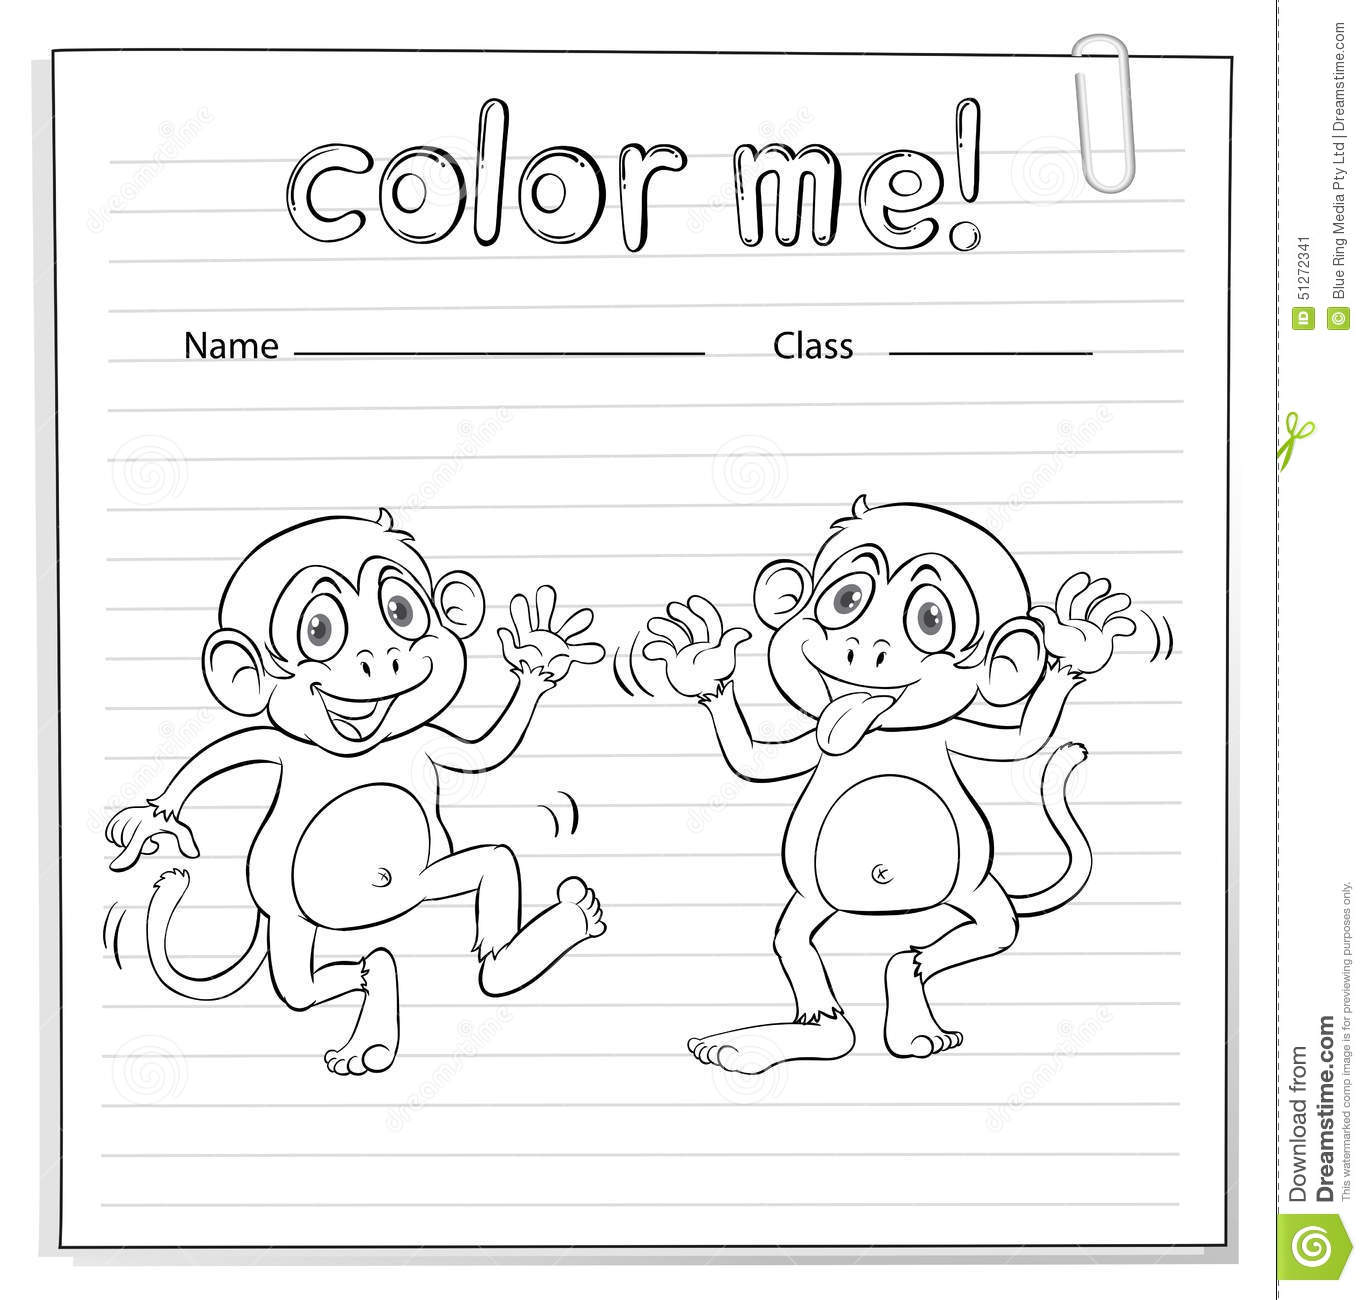 Coloring Worksheet With Monkeys Stock Vector